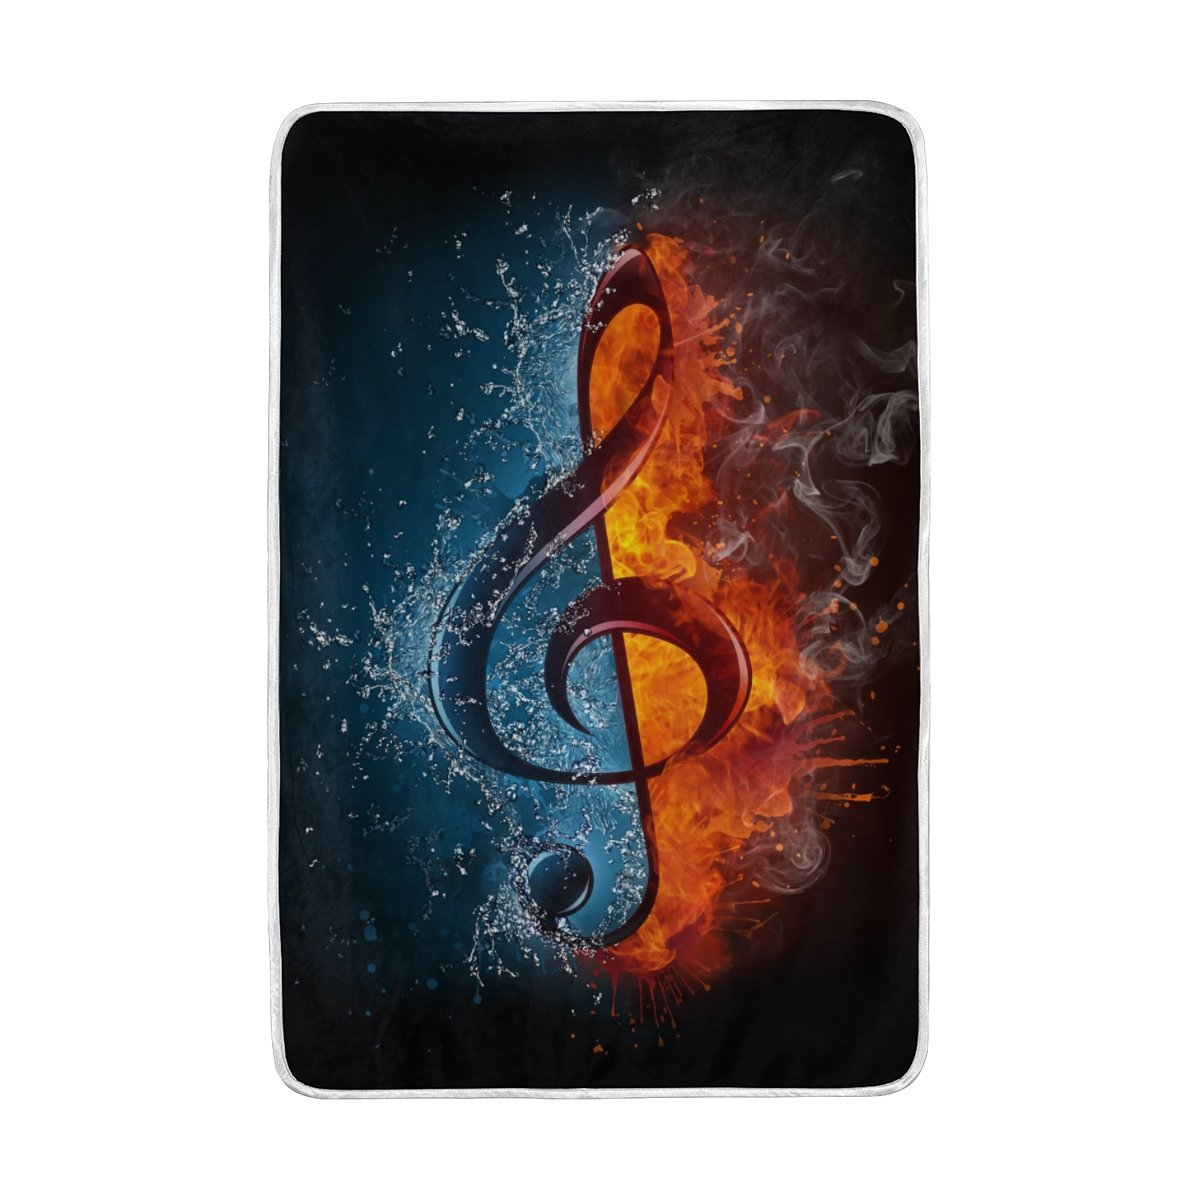 Vantaso Soft Blankets Throw Music Note Water and Fire Microfiber Polyester Blankets for Bedroom Sofa Couch Living Room for Kids Children Girls Boys 60 x 90 inch